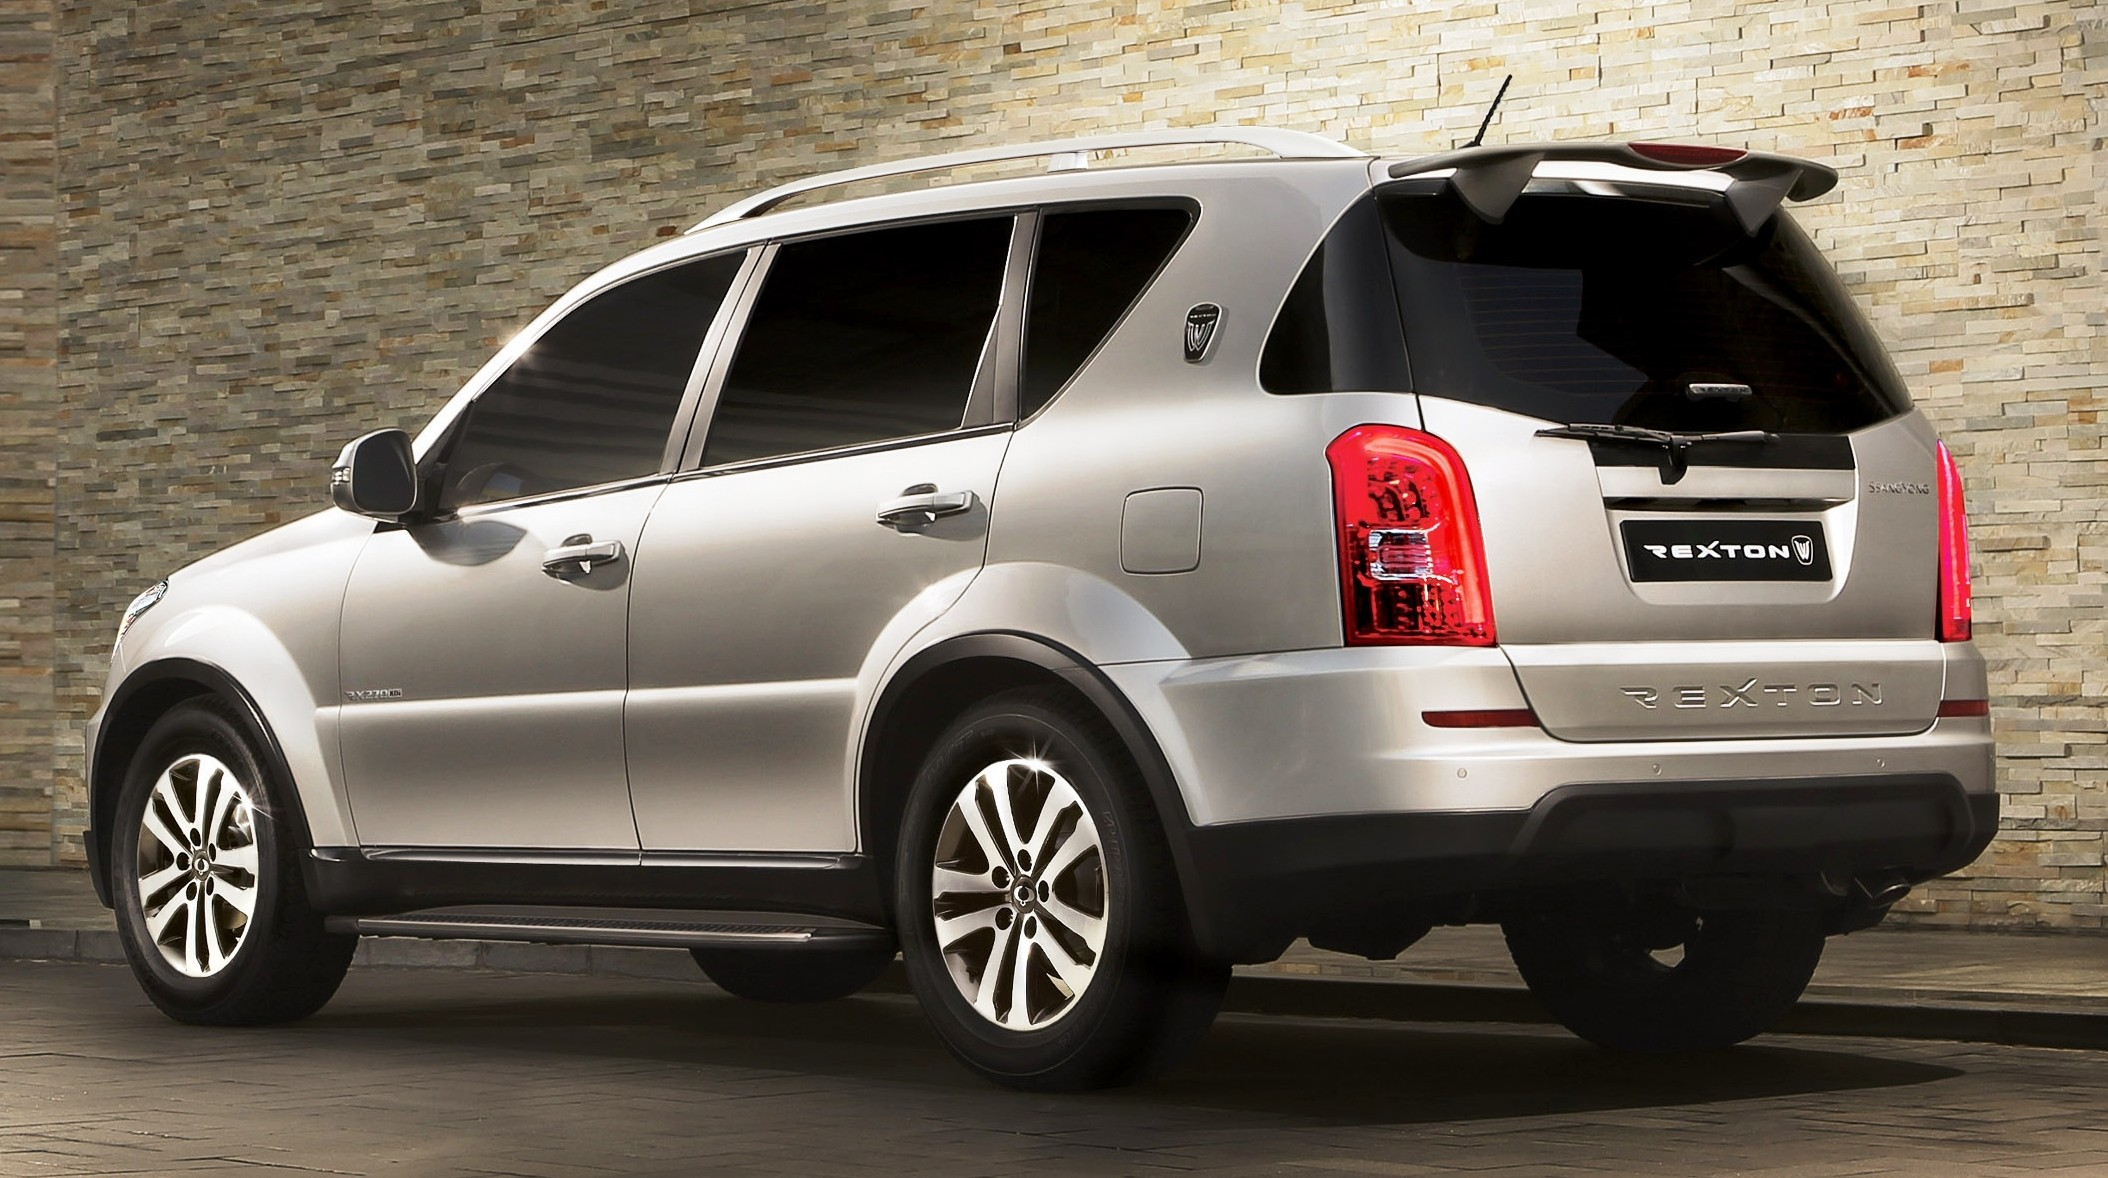 ssangyong rexton w launched in the uk new face image 206281. Black Bedroom Furniture Sets. Home Design Ideas